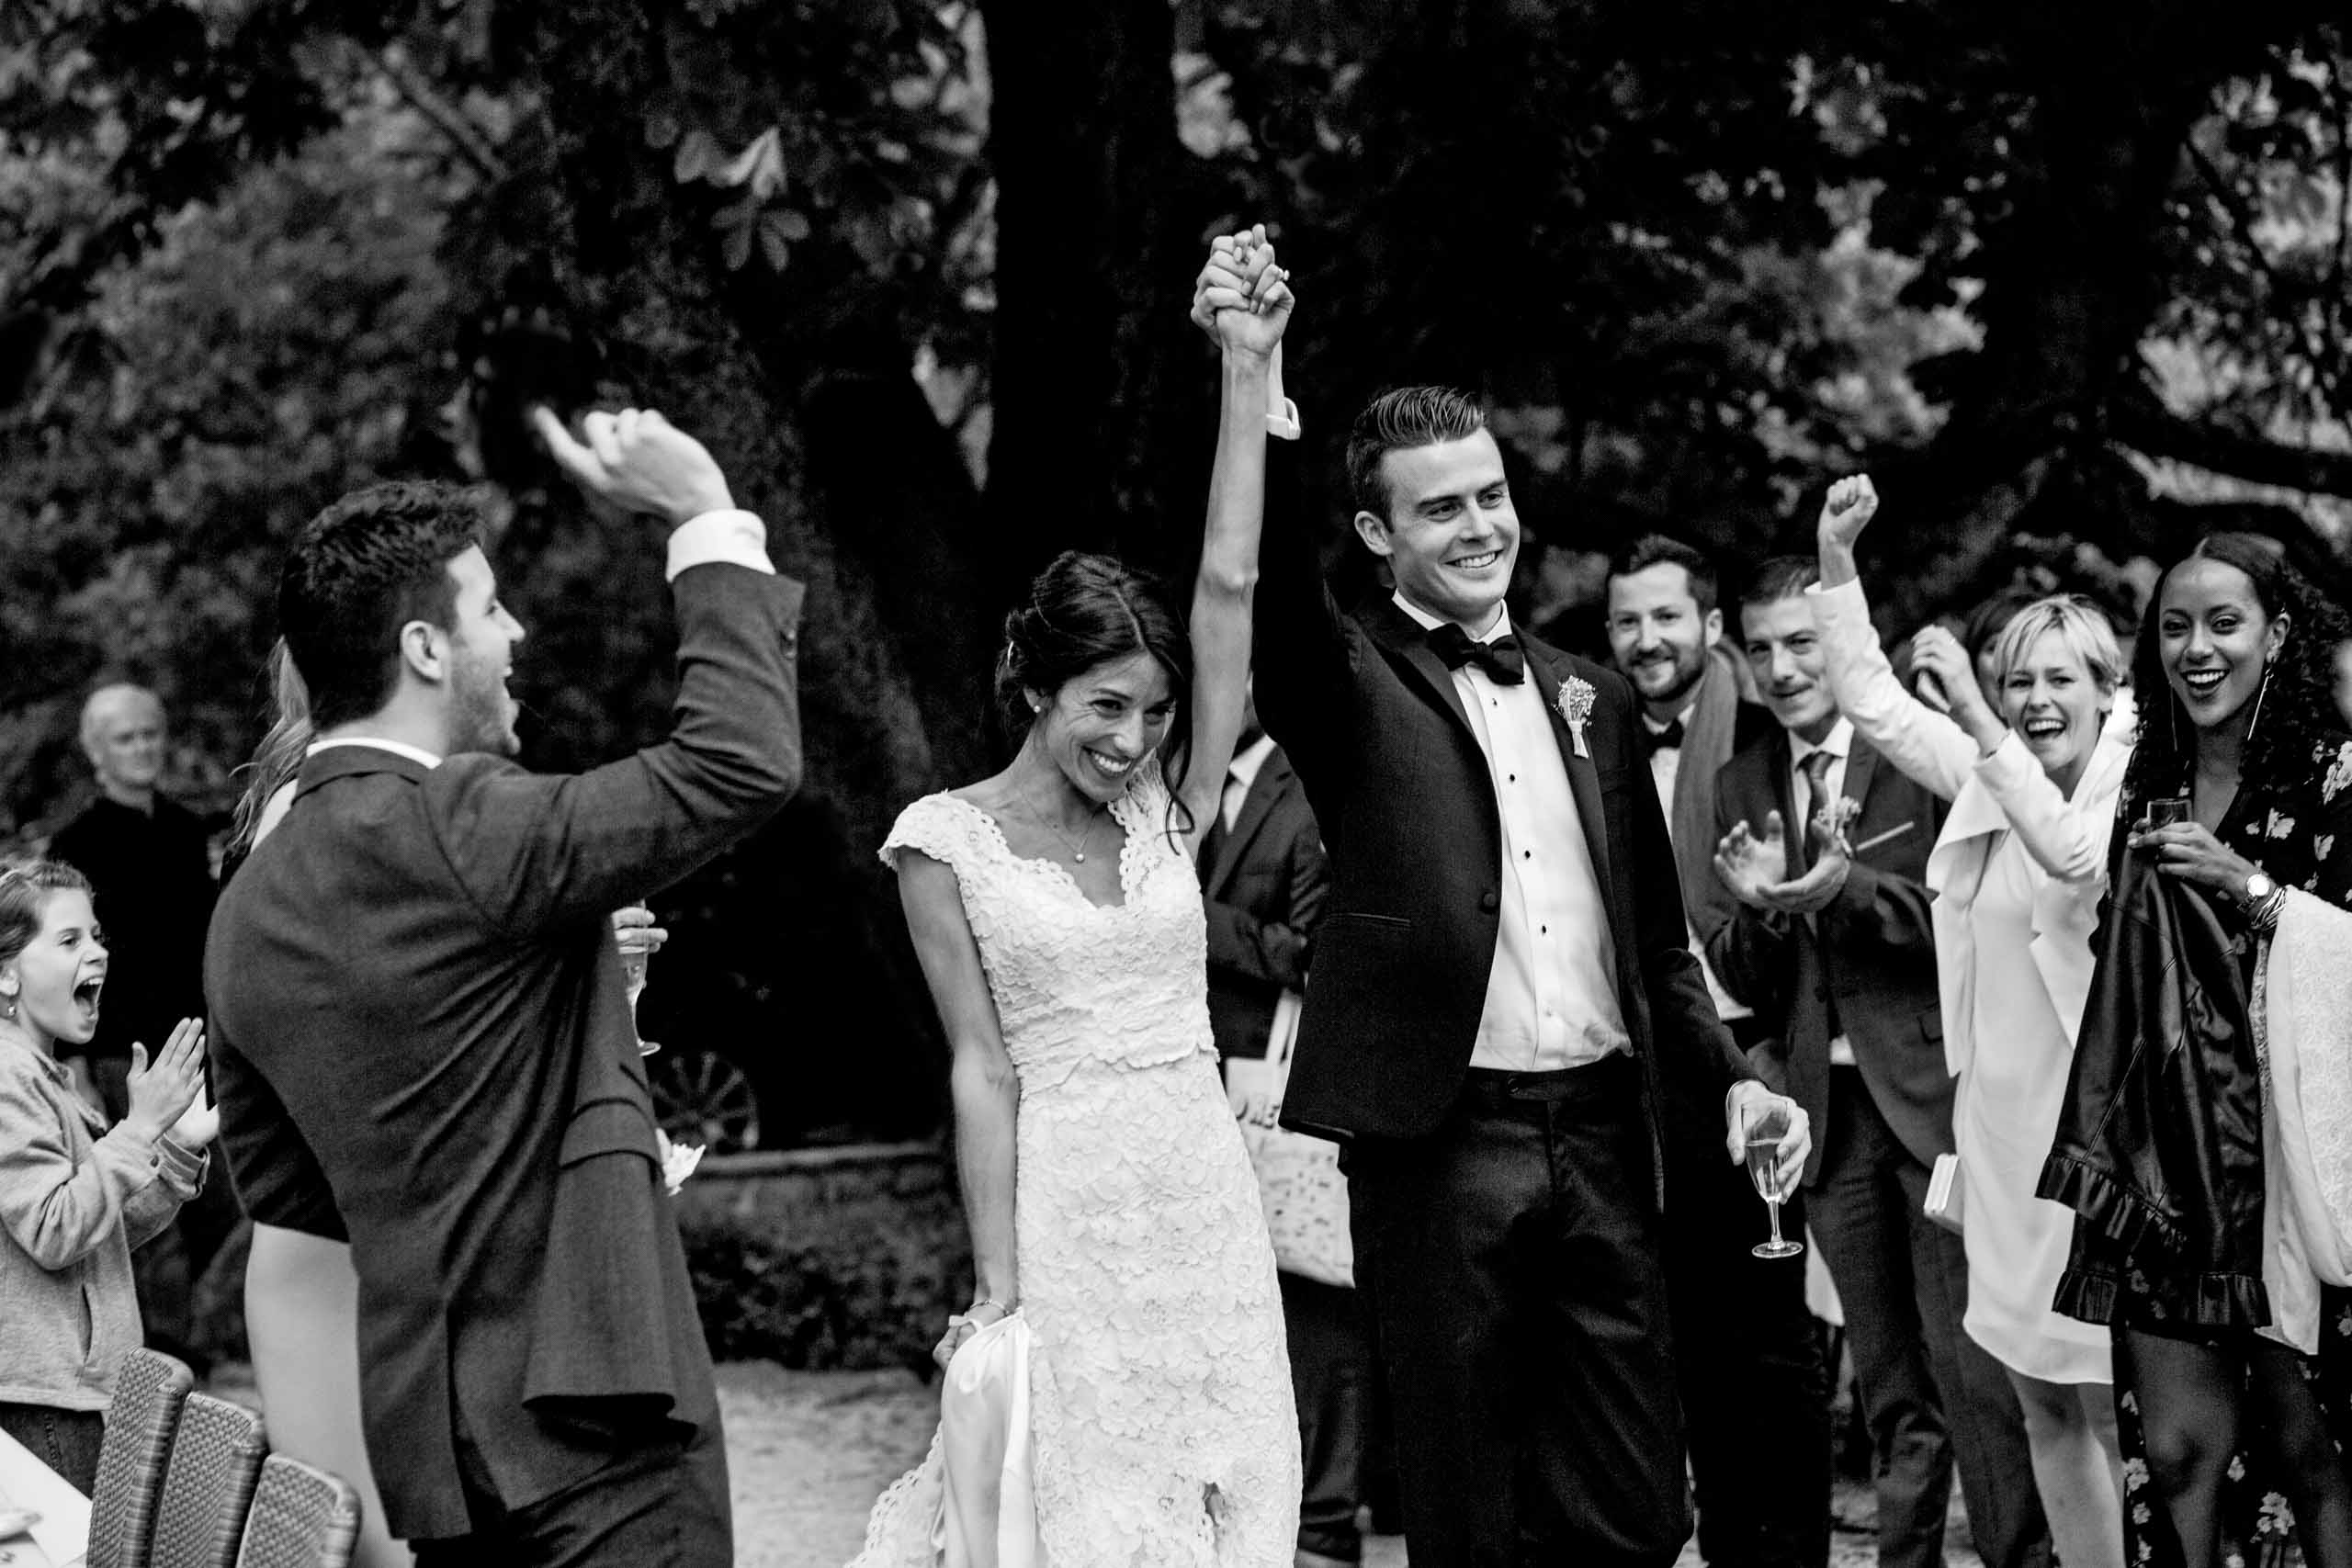 Bride and groom entering their Chateau Zen wedding reception with family and friends cheering them on in the South of France.